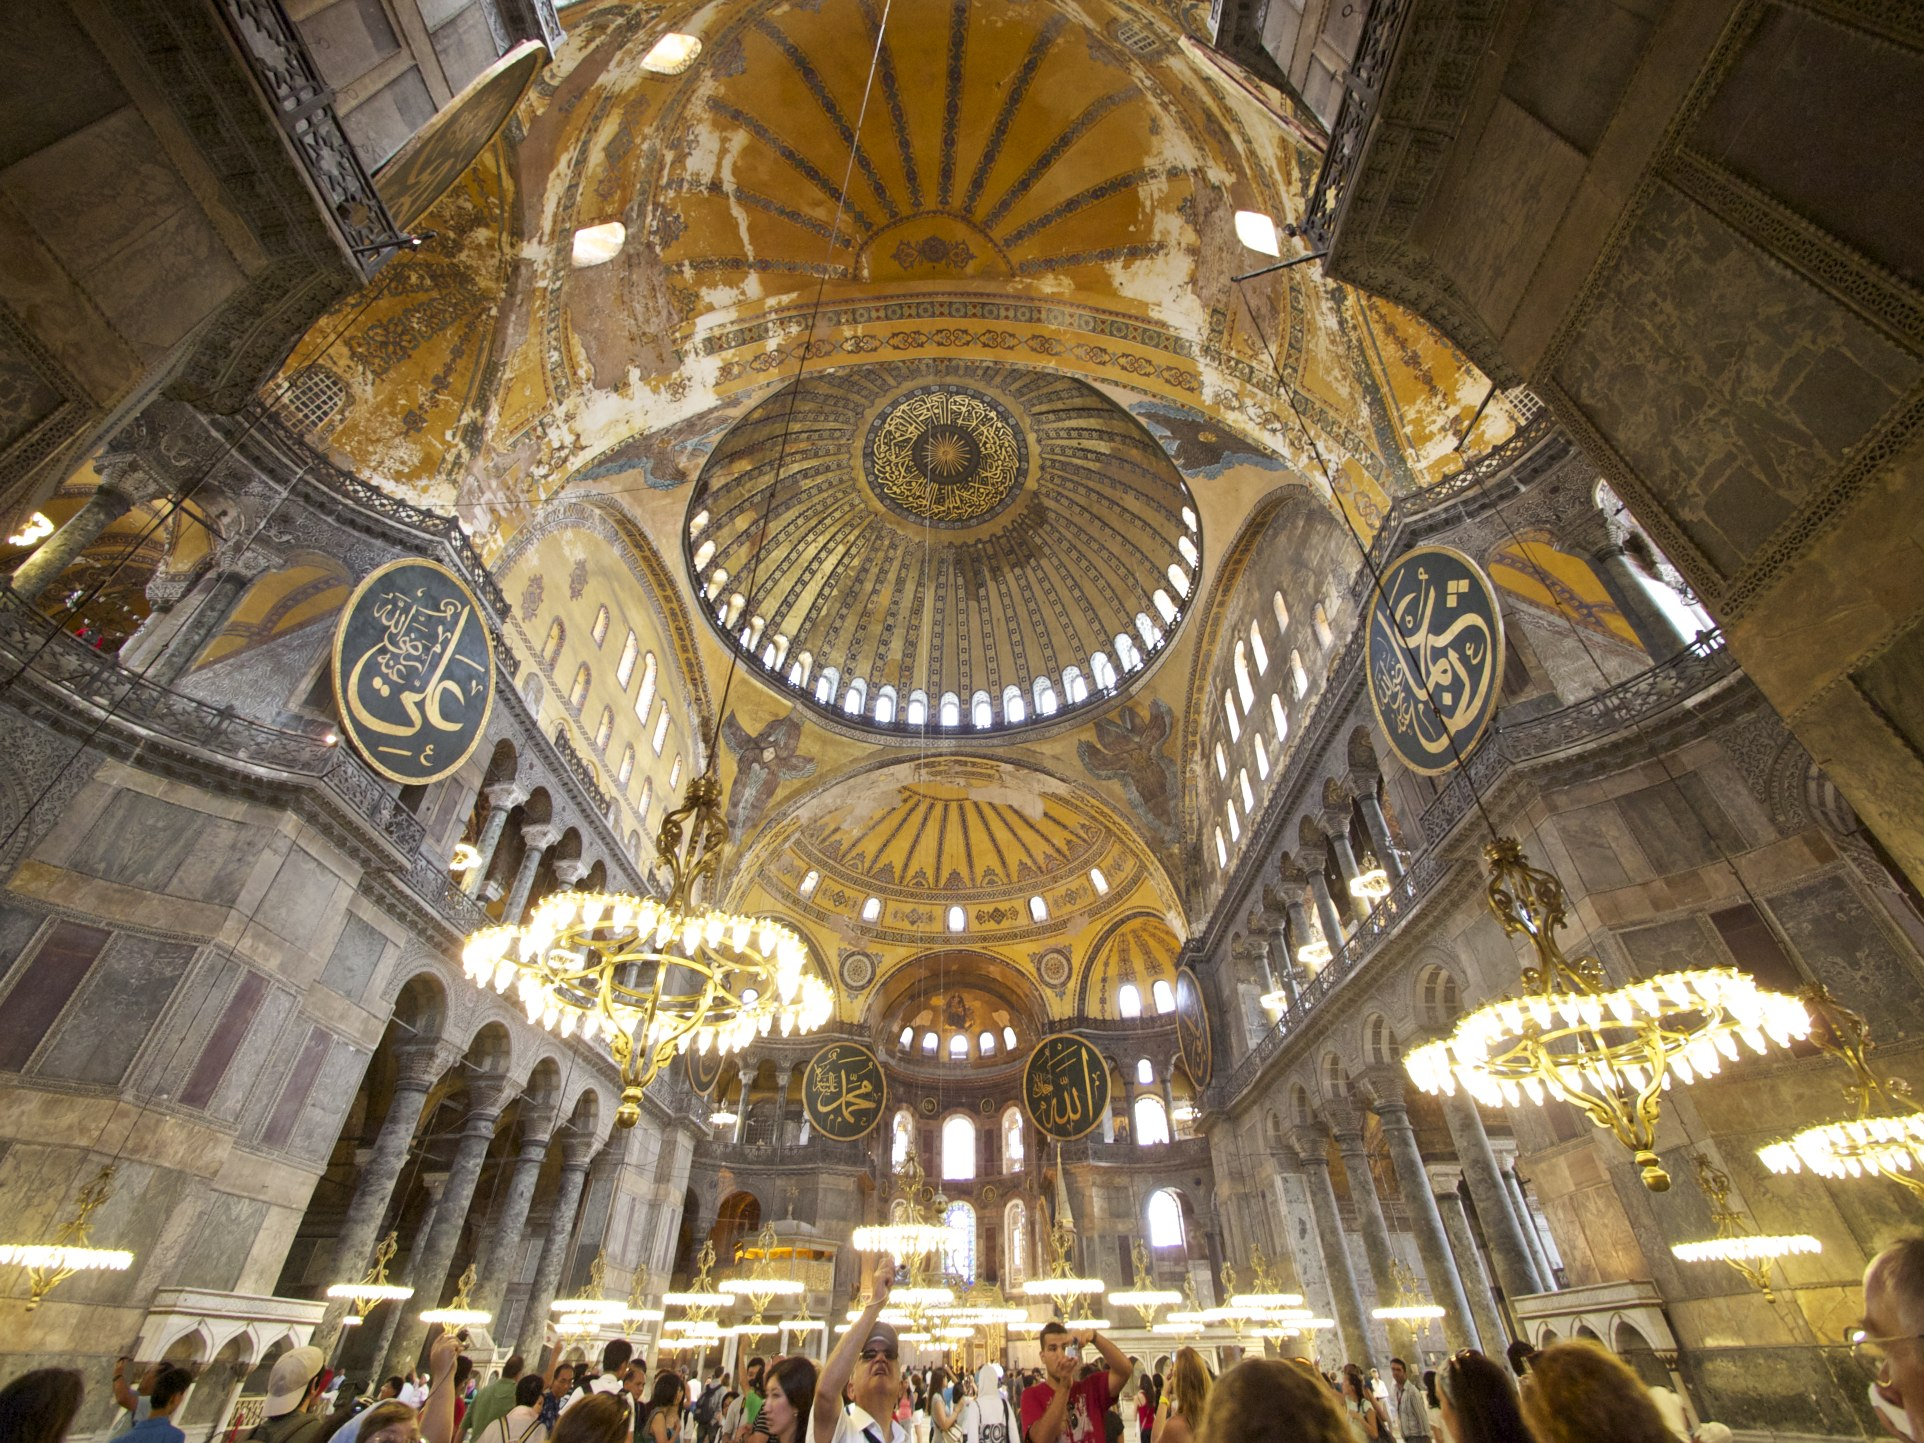 Charming File:Interior Of Hagia Sophia